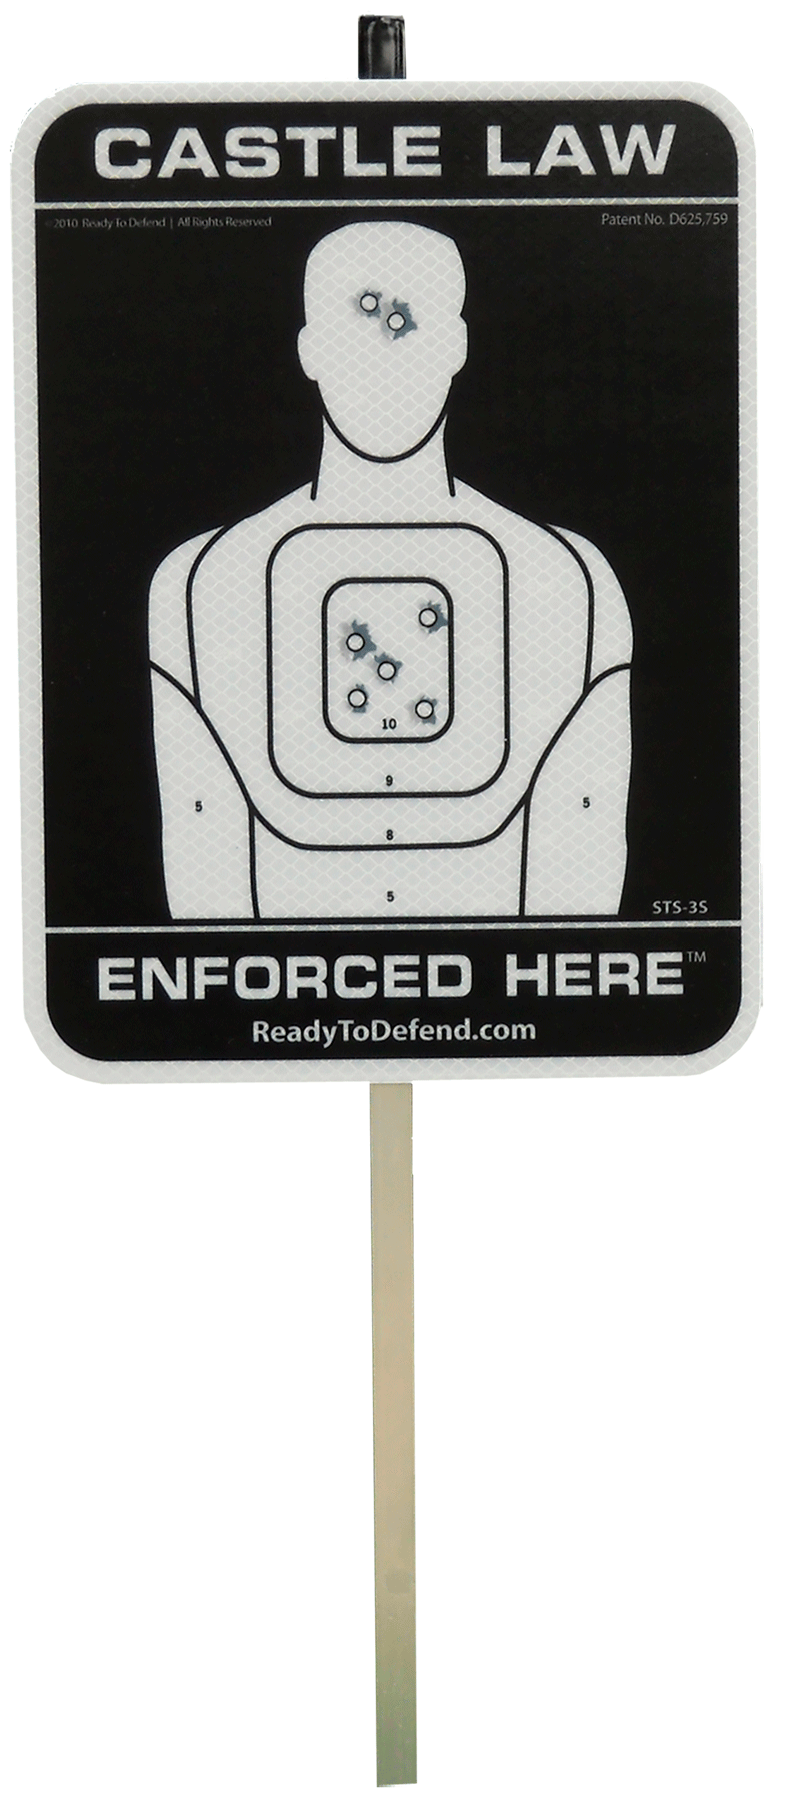 Ready to Defend/Cogent STS3S Reflective Yard Sign Castle Law Enforced Here Reflective Yard Sign Black/White